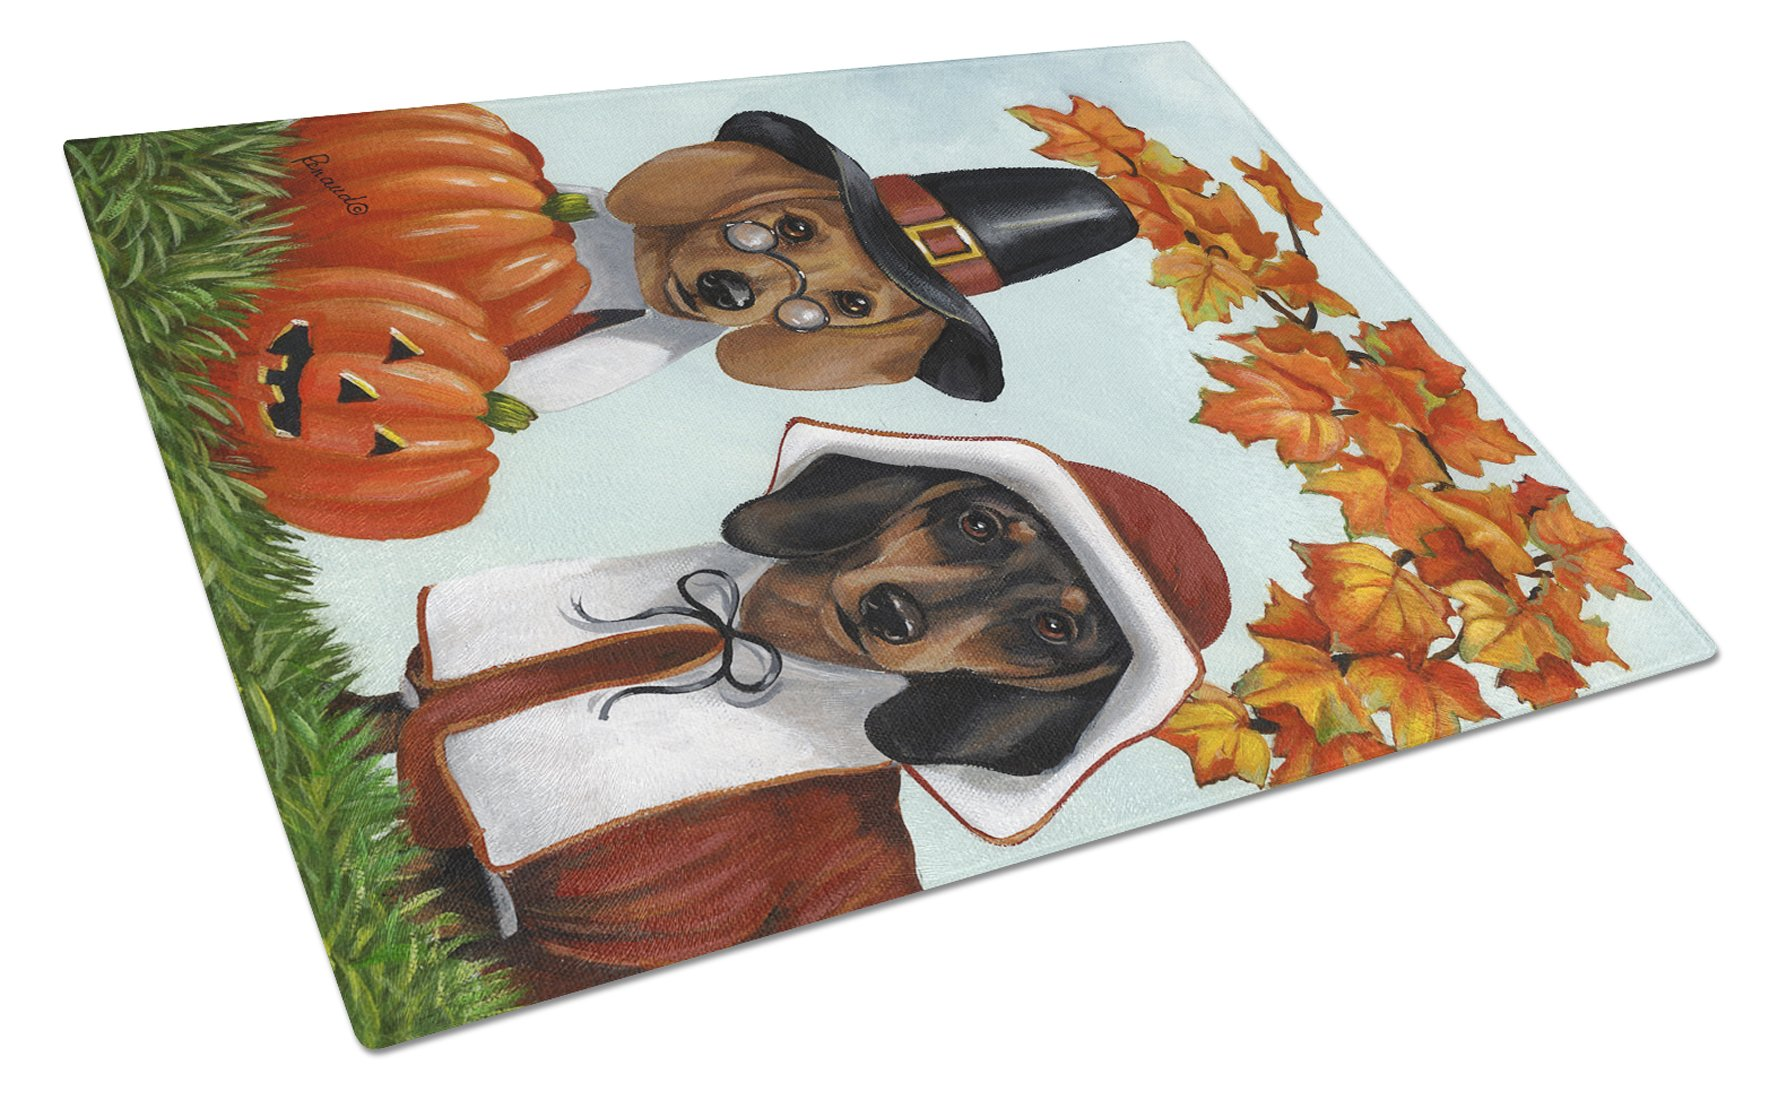 Dachshund Thanksgiving Pilgrims Glass Cutting Board Large PPP3087LCB by Caroline's Treasures